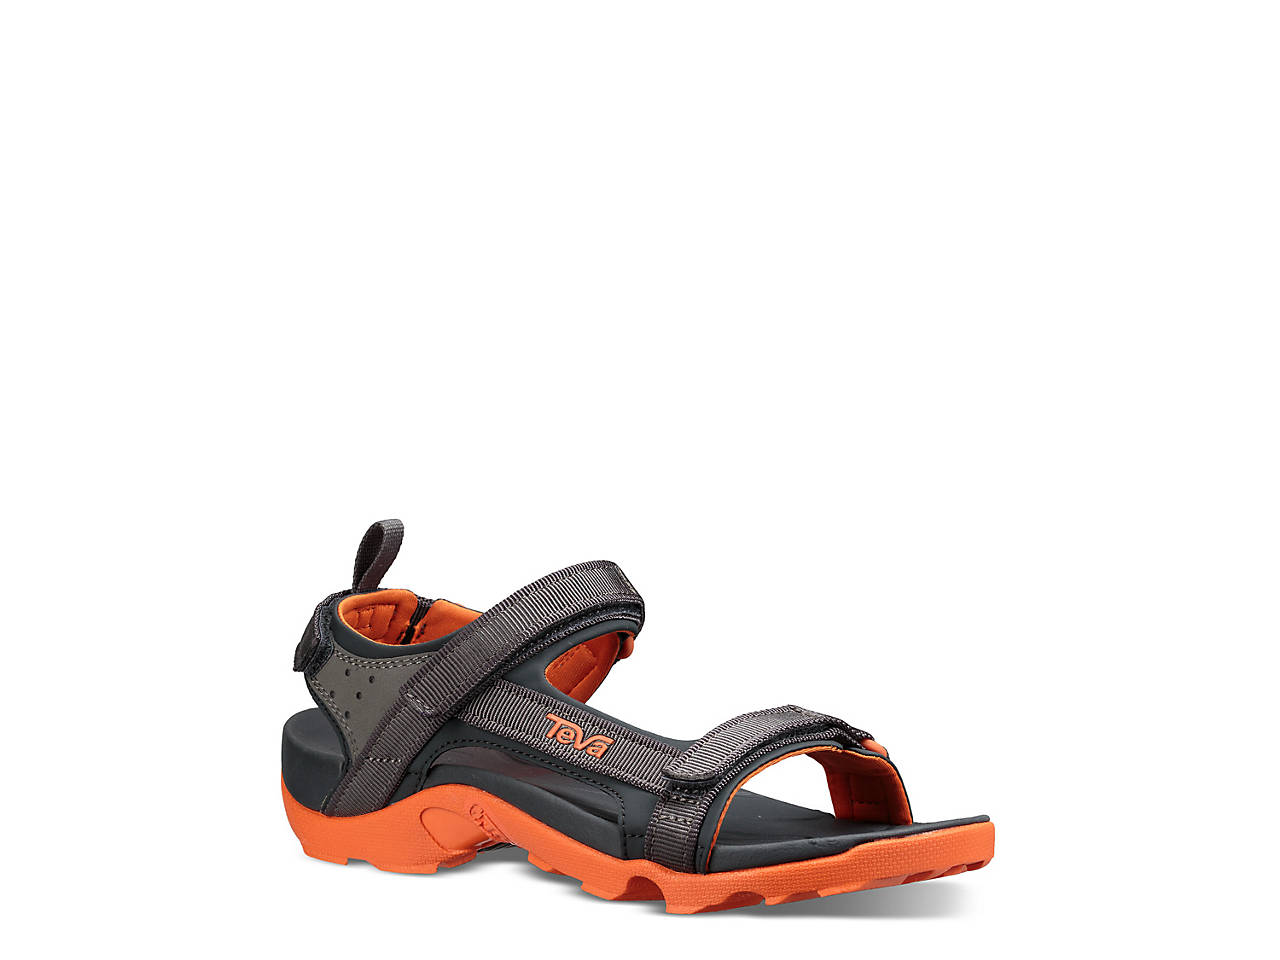 f6783df4f021 Teva Tanza Toddler   Youth Sandal Kids Shoes